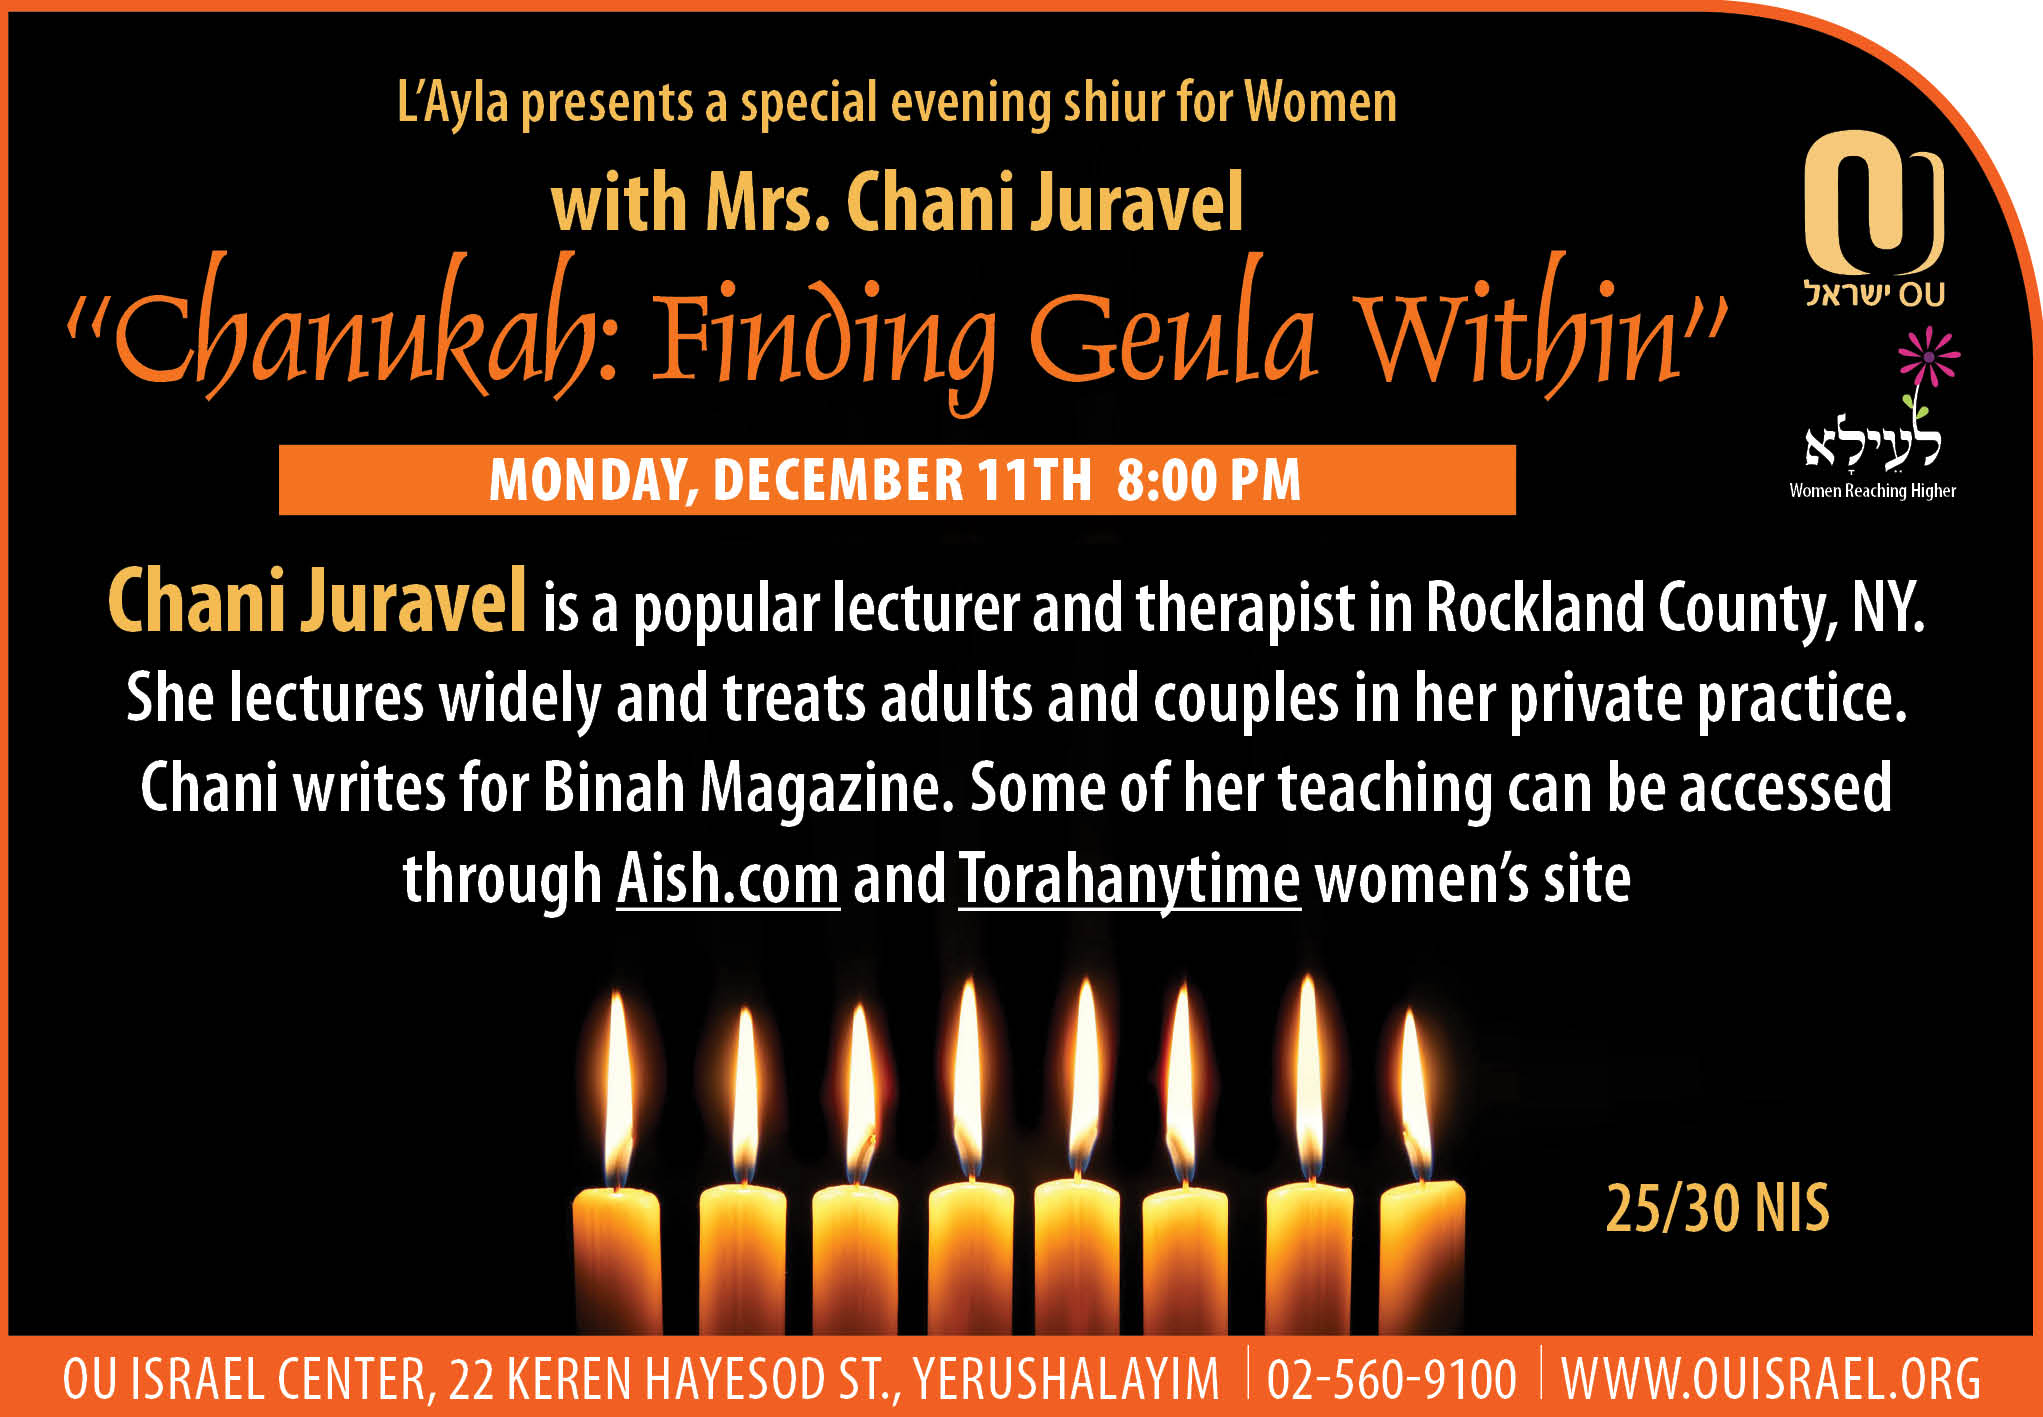 Special Chanukah evening shiur for Women with Mrs. Chani Juravel